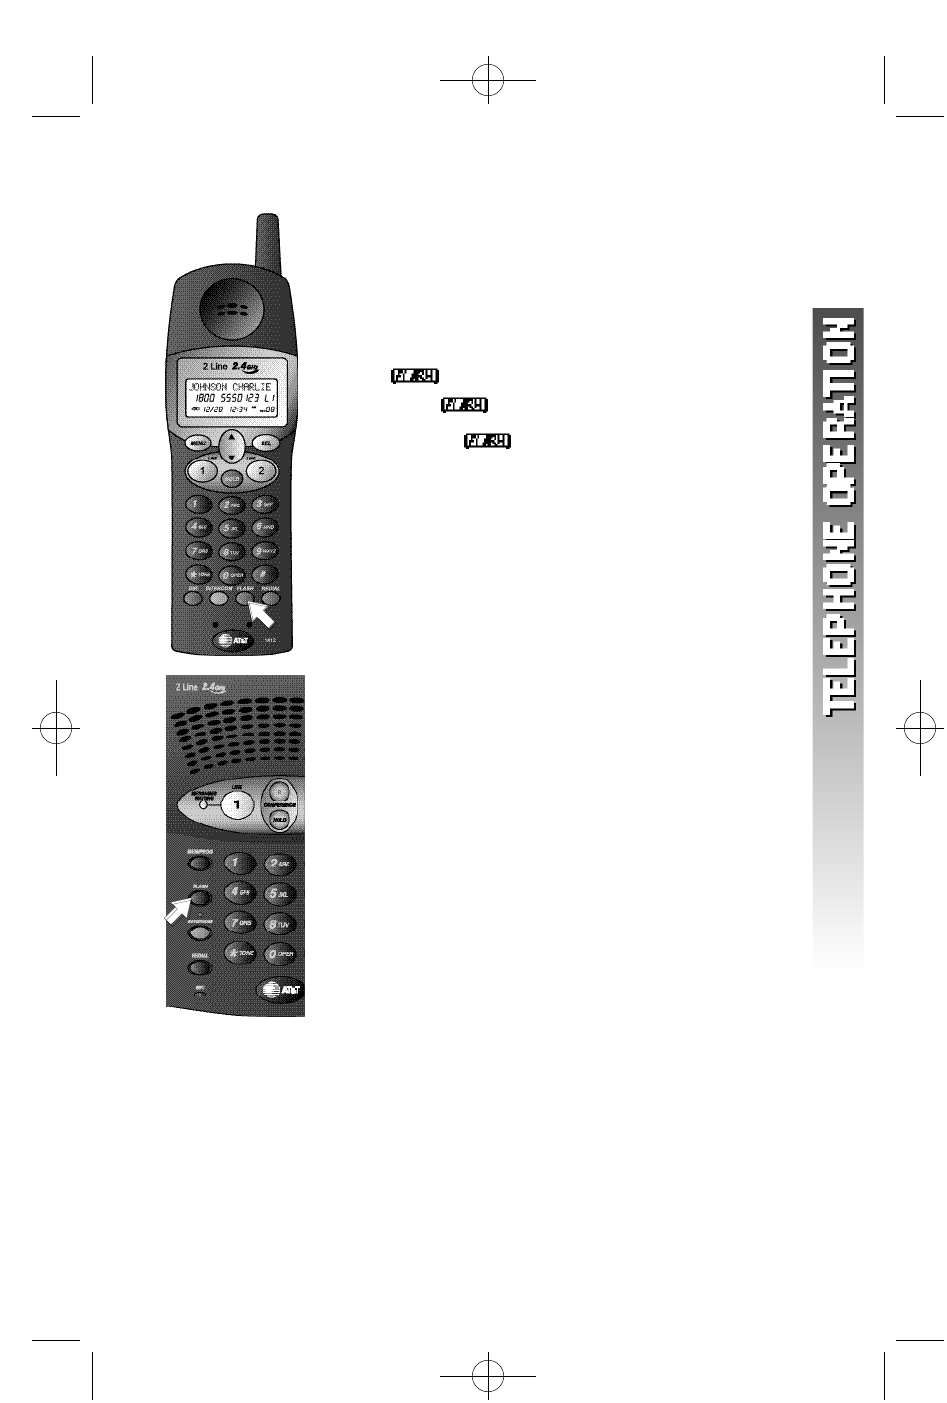 Page 24 of AT&T Cordless Telephone 1412 User Guide